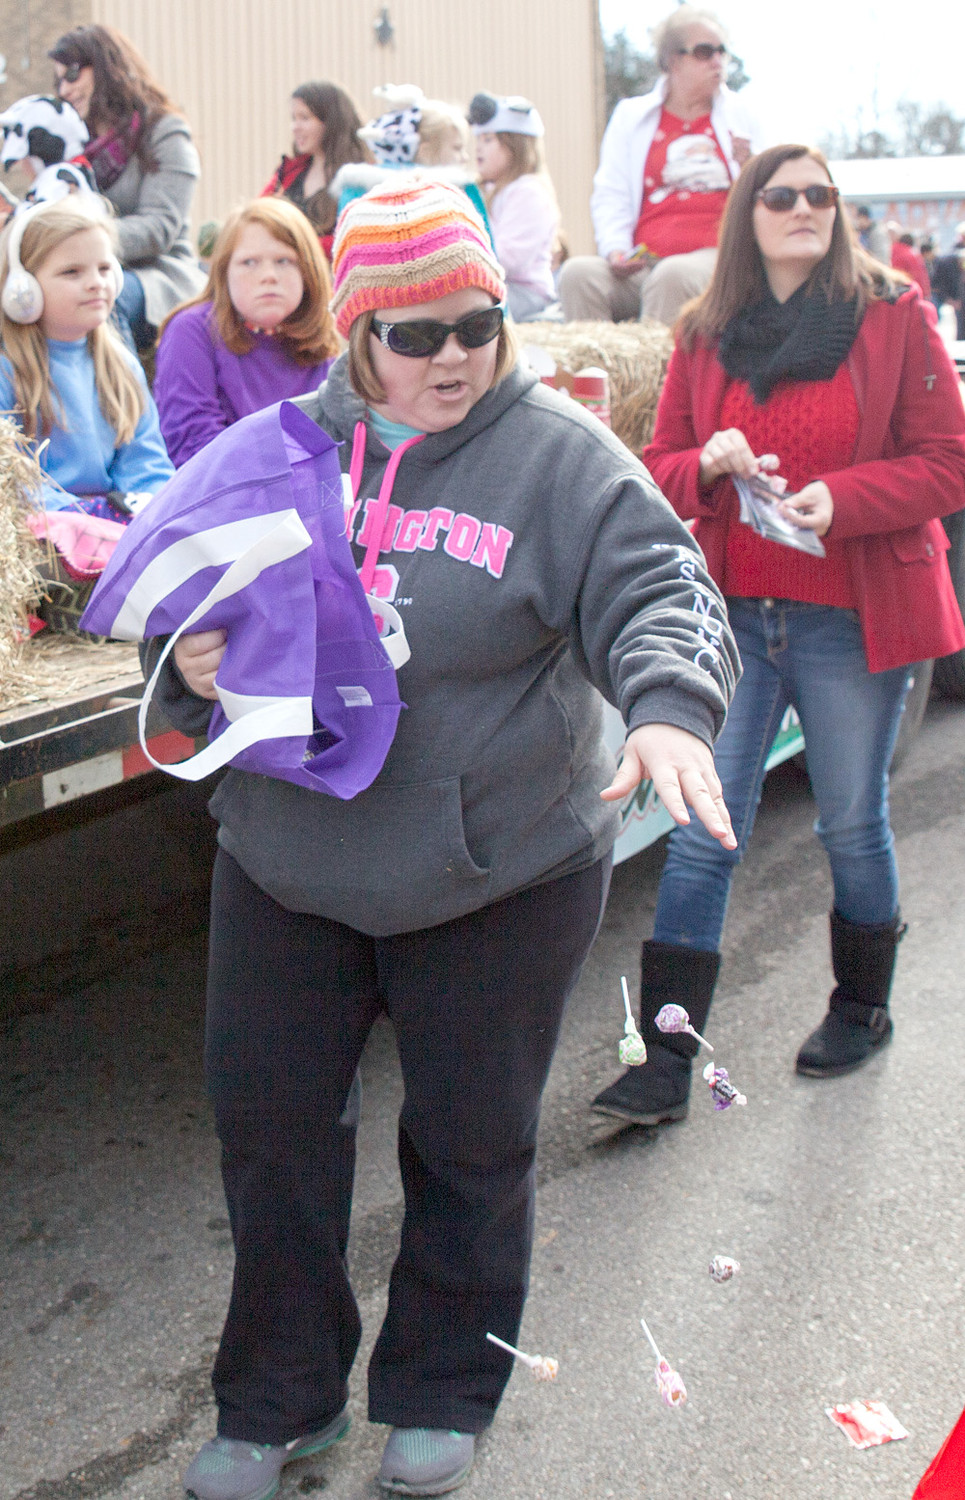 Most of the floats were accompanied by people, like the lady pictured, passing out candy to all the attendees.